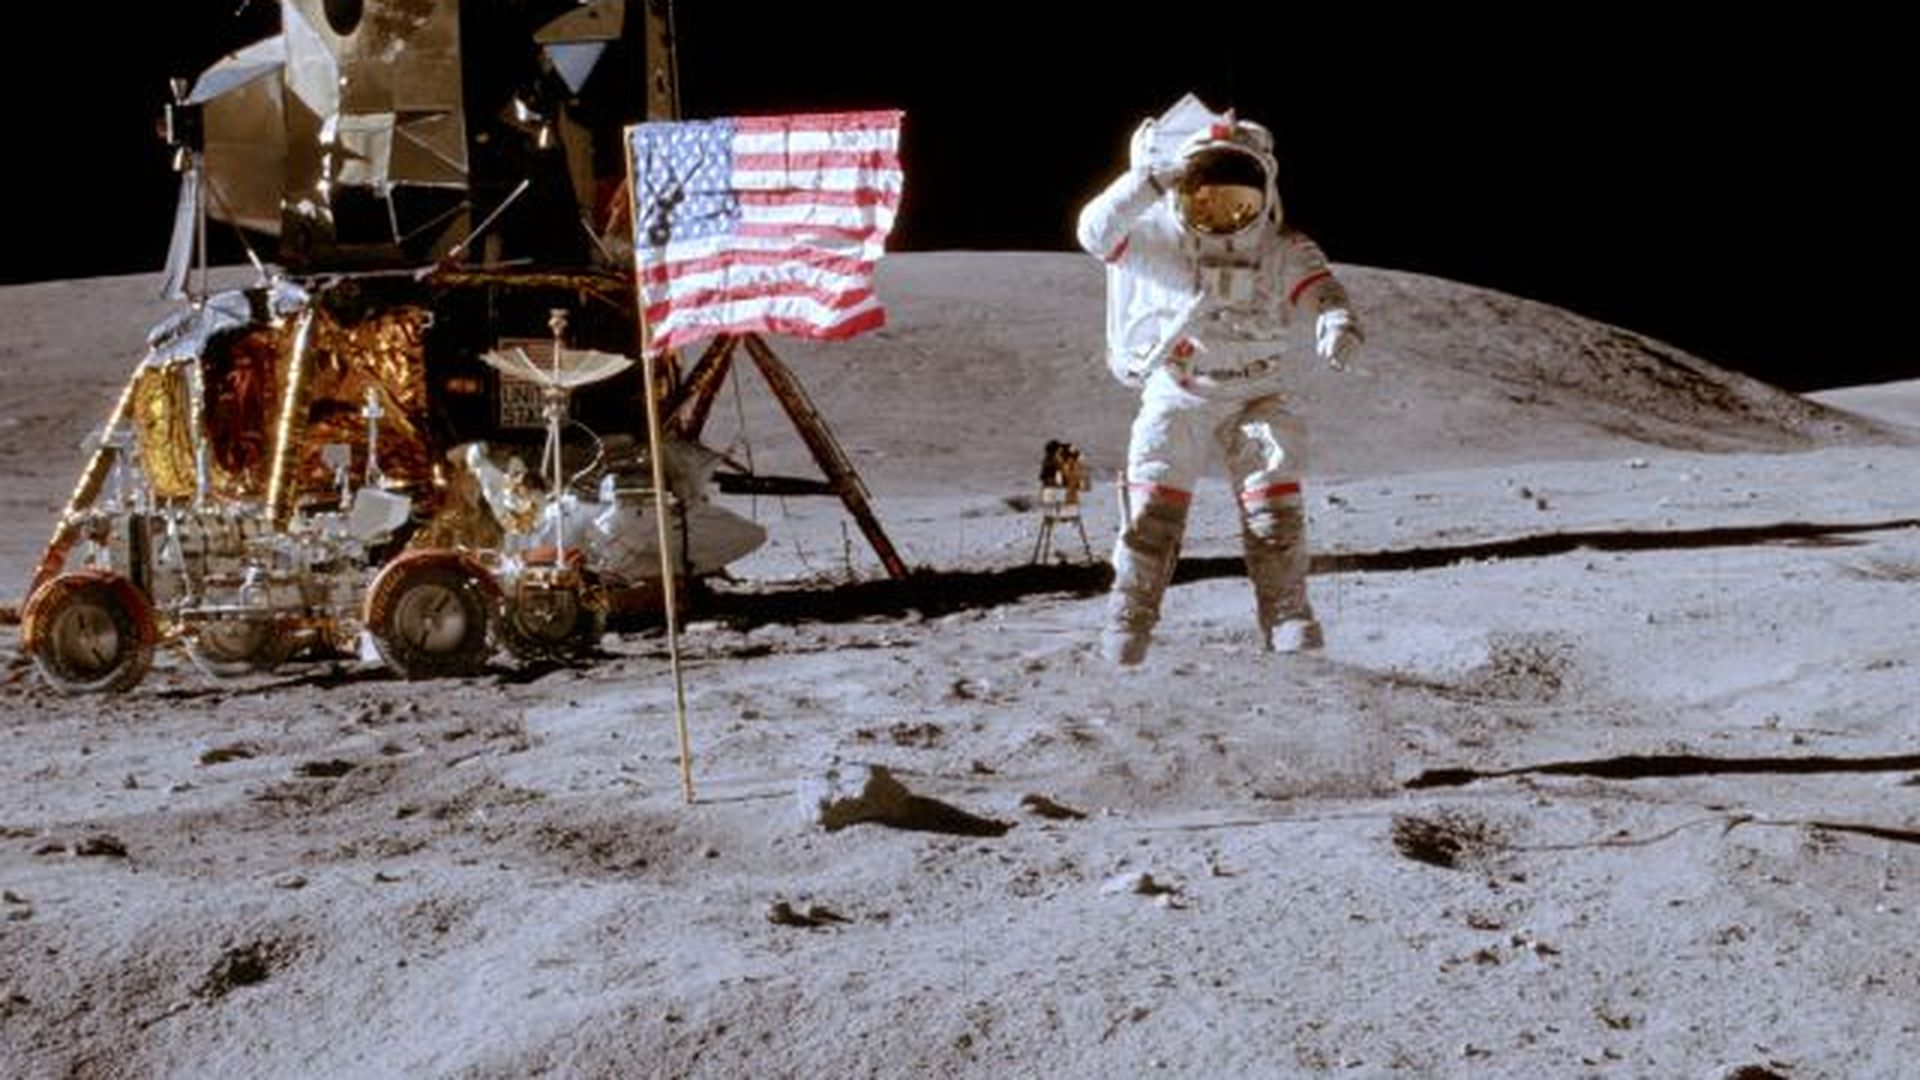 10 amazing facts about the apollo 11 moon landing - HD1200×800